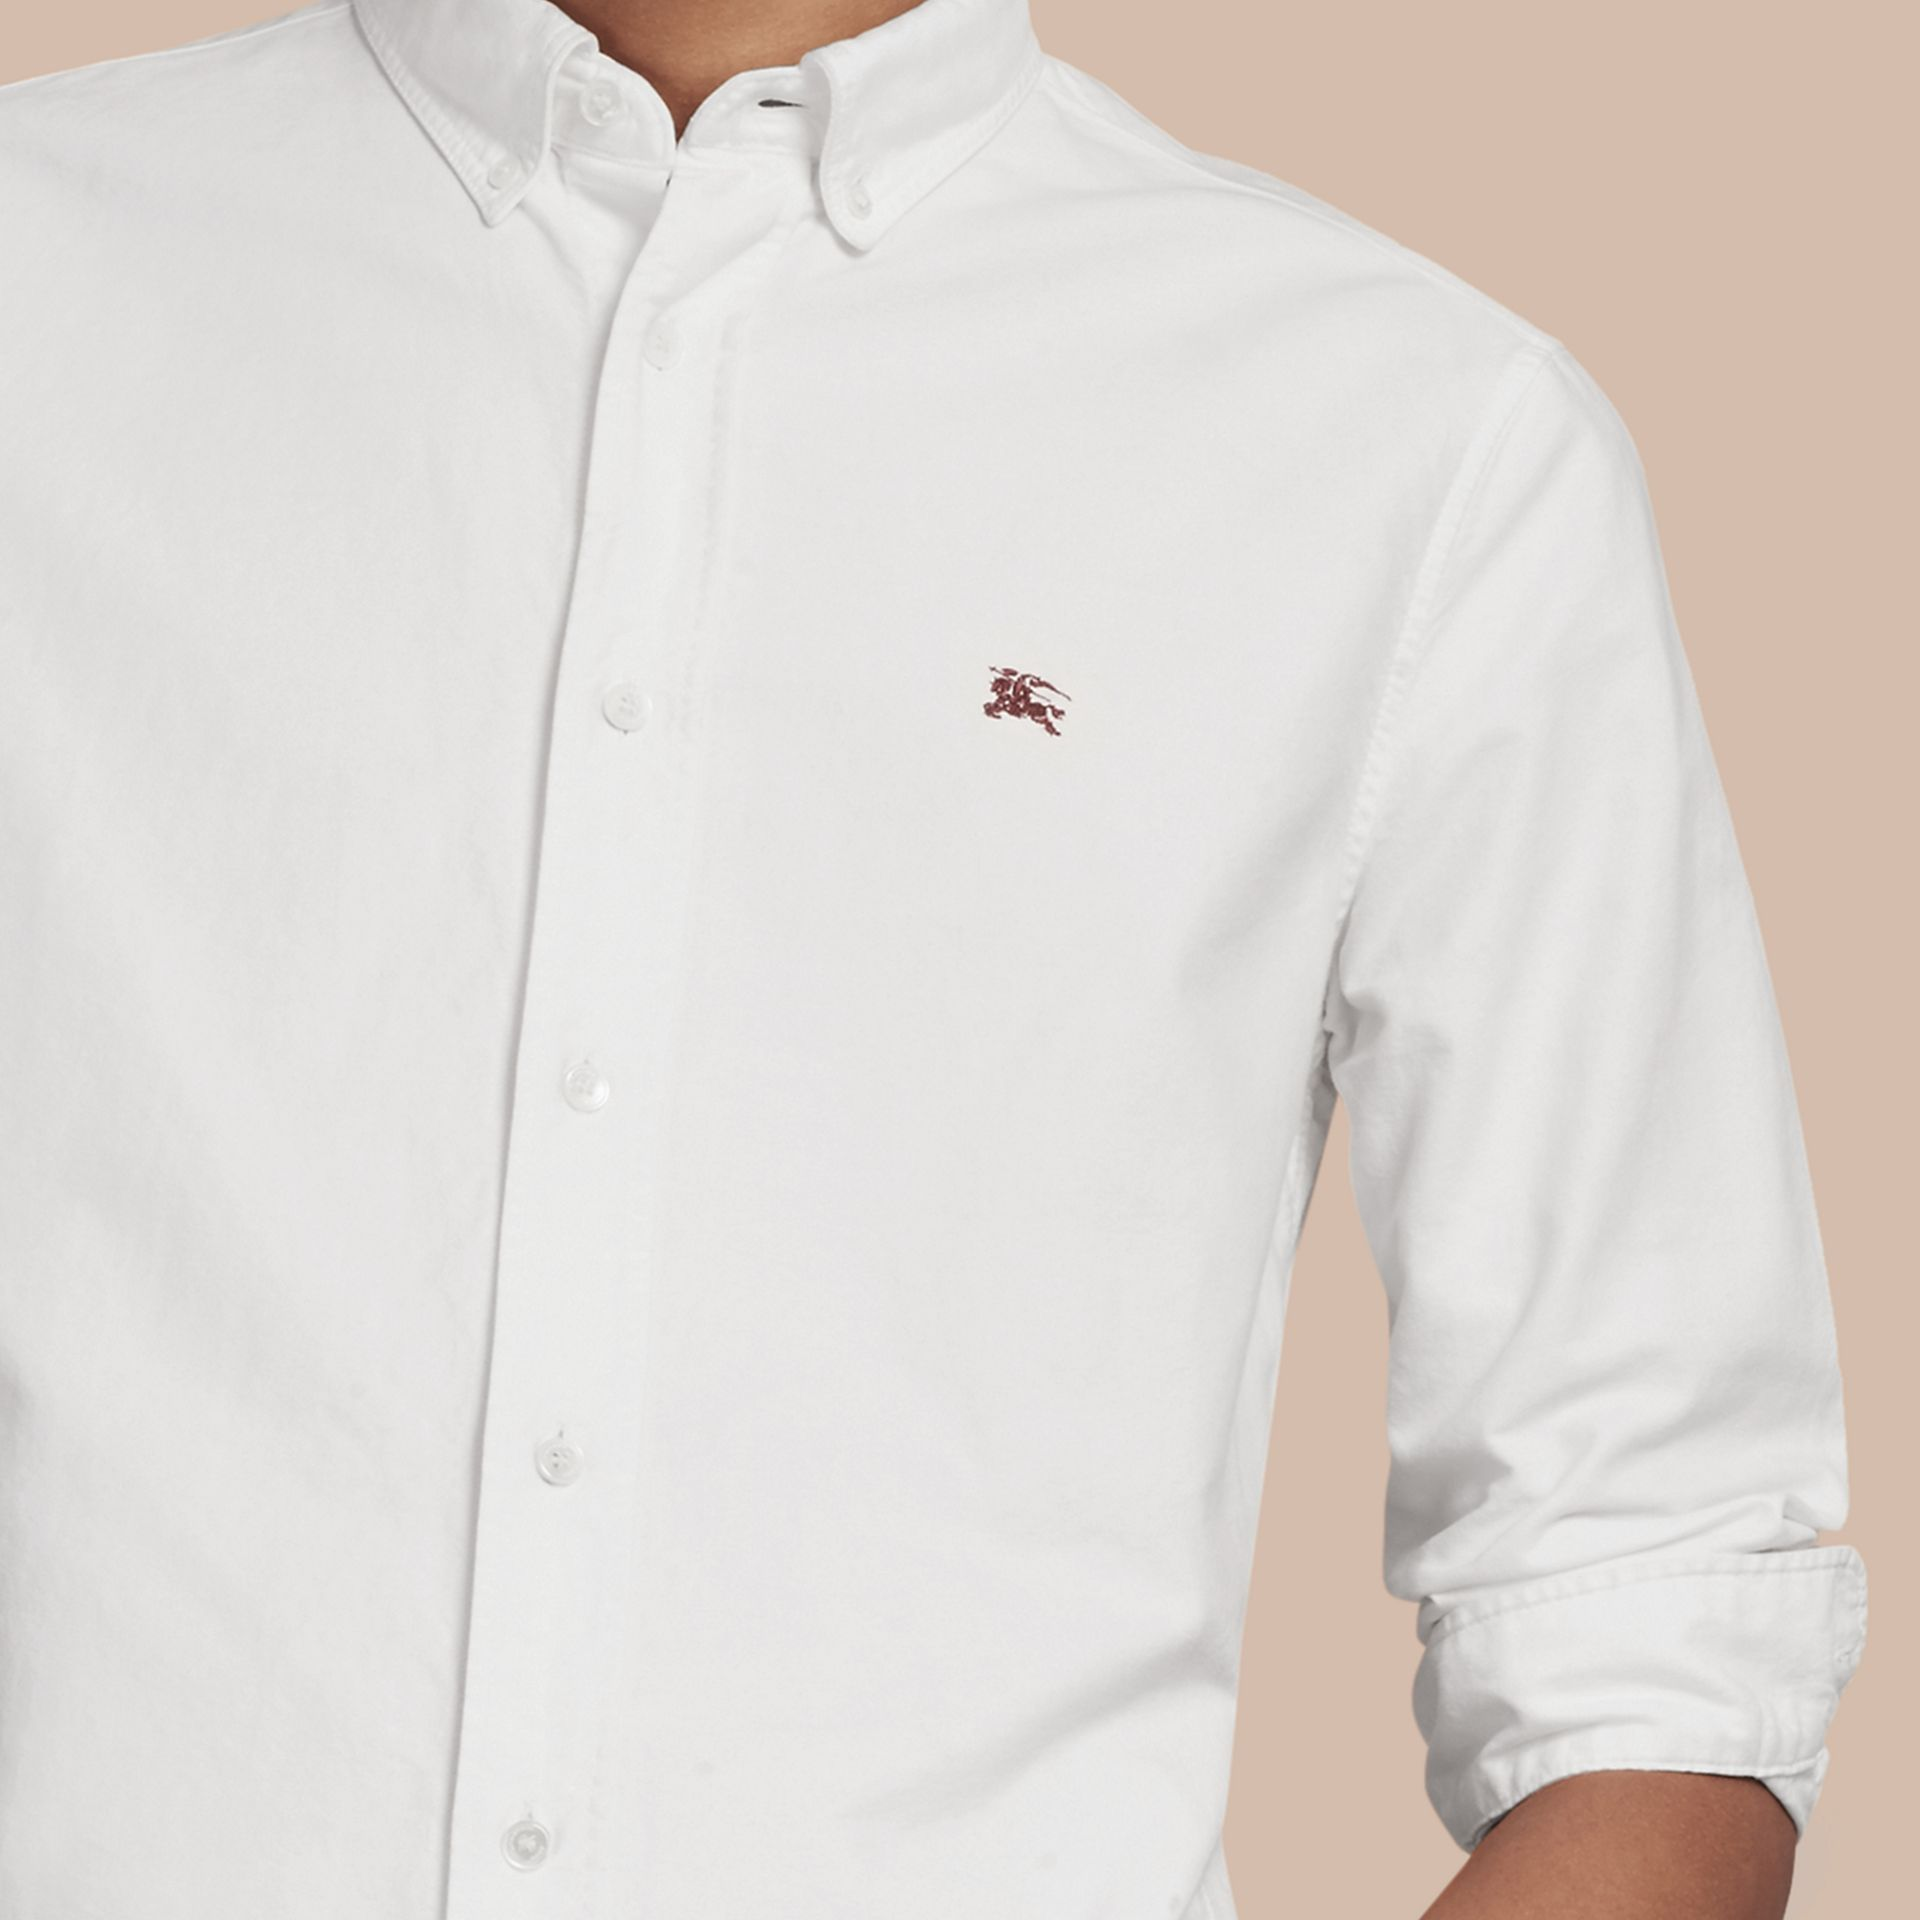 Cotton Oxford Shirt in White - Men | Burberry Hong Kong - gallery image 2